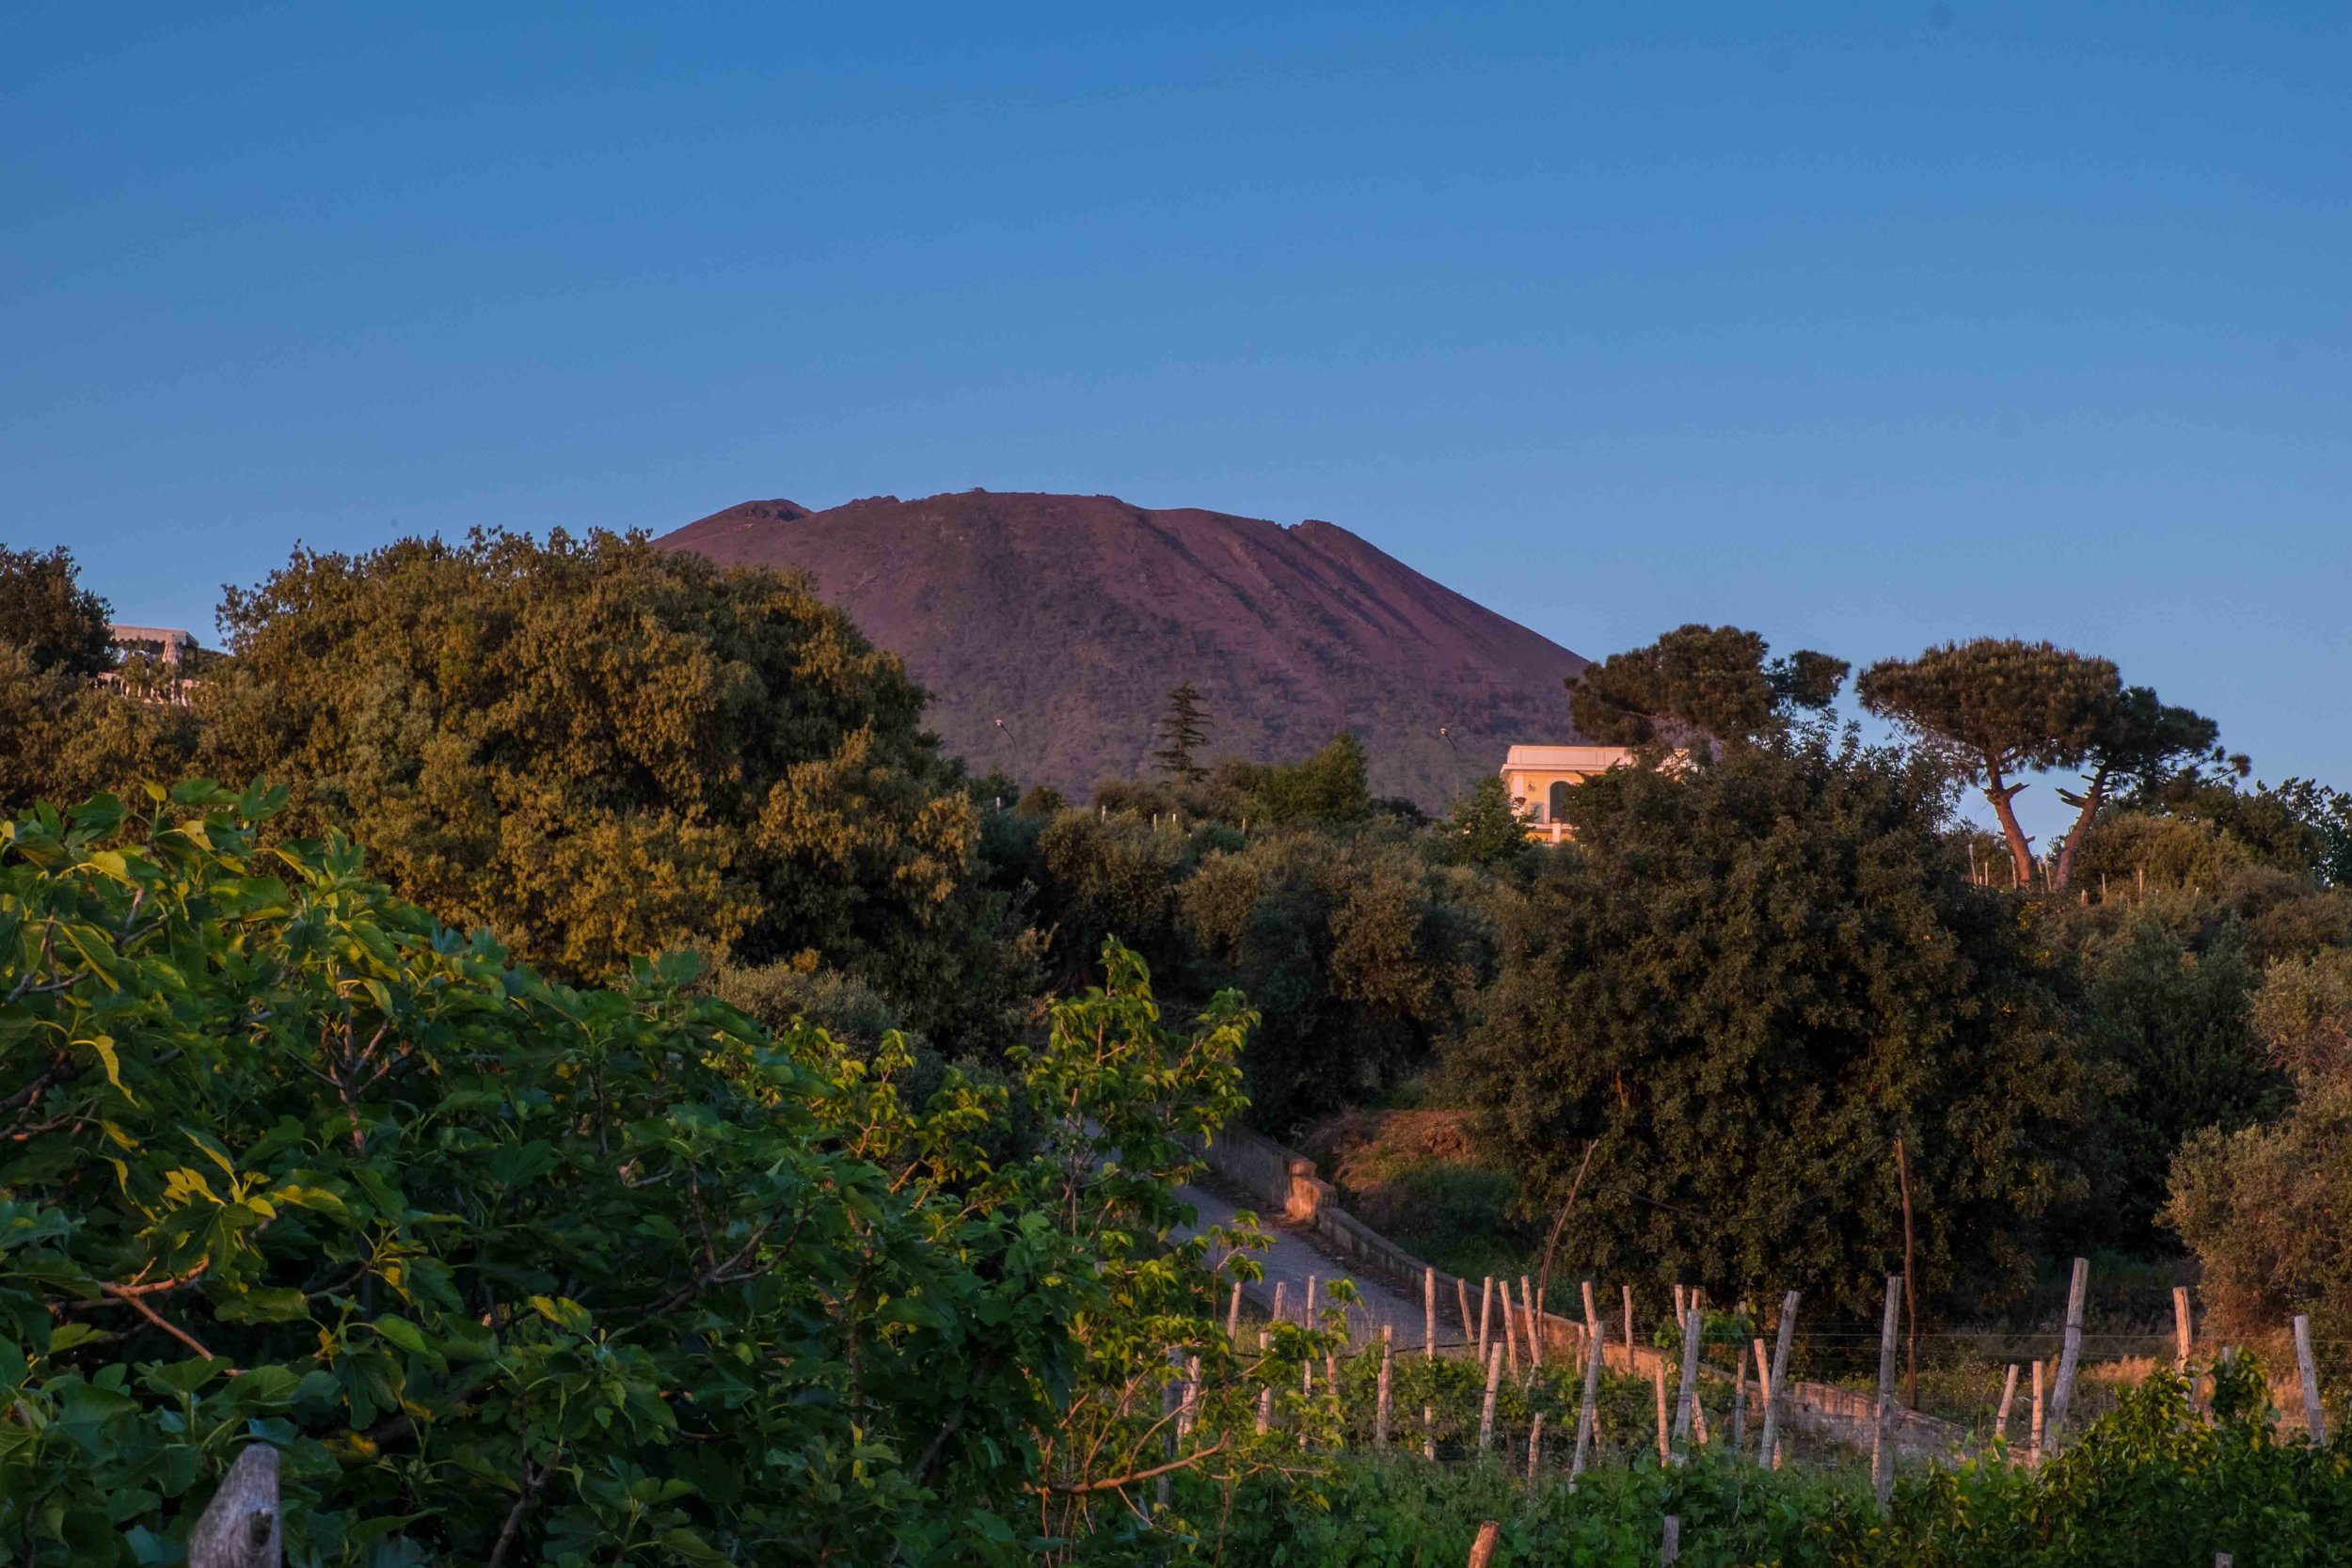 Vesuvius with vineyards in foreground | ©John Szabo (published by Jacqui Small)